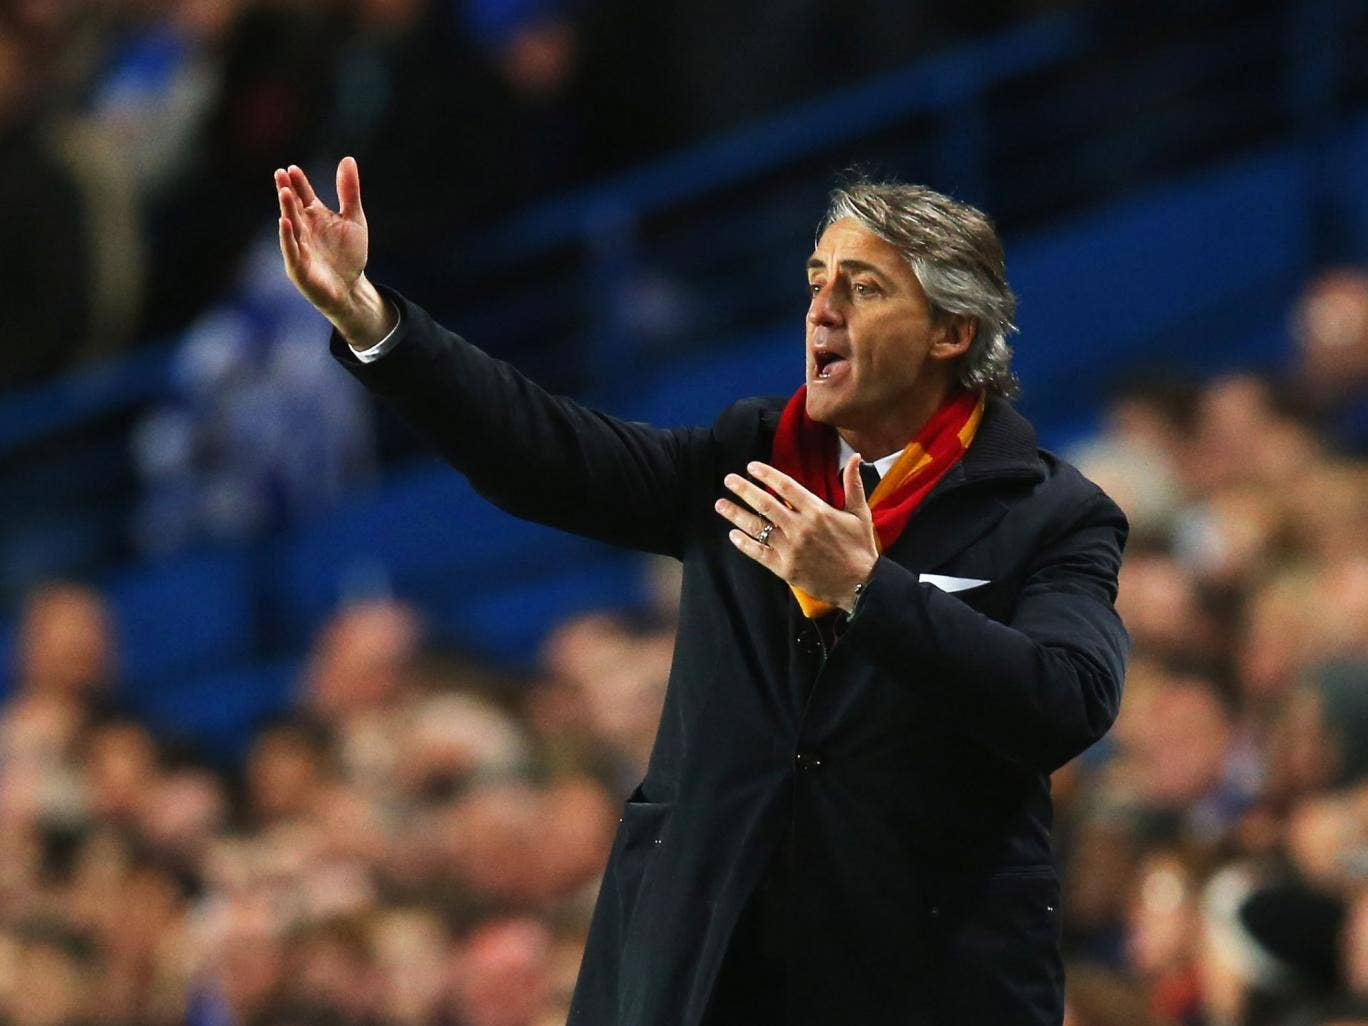 Roberto Mancini makes a gesture from the touchline at Stamford Bridge